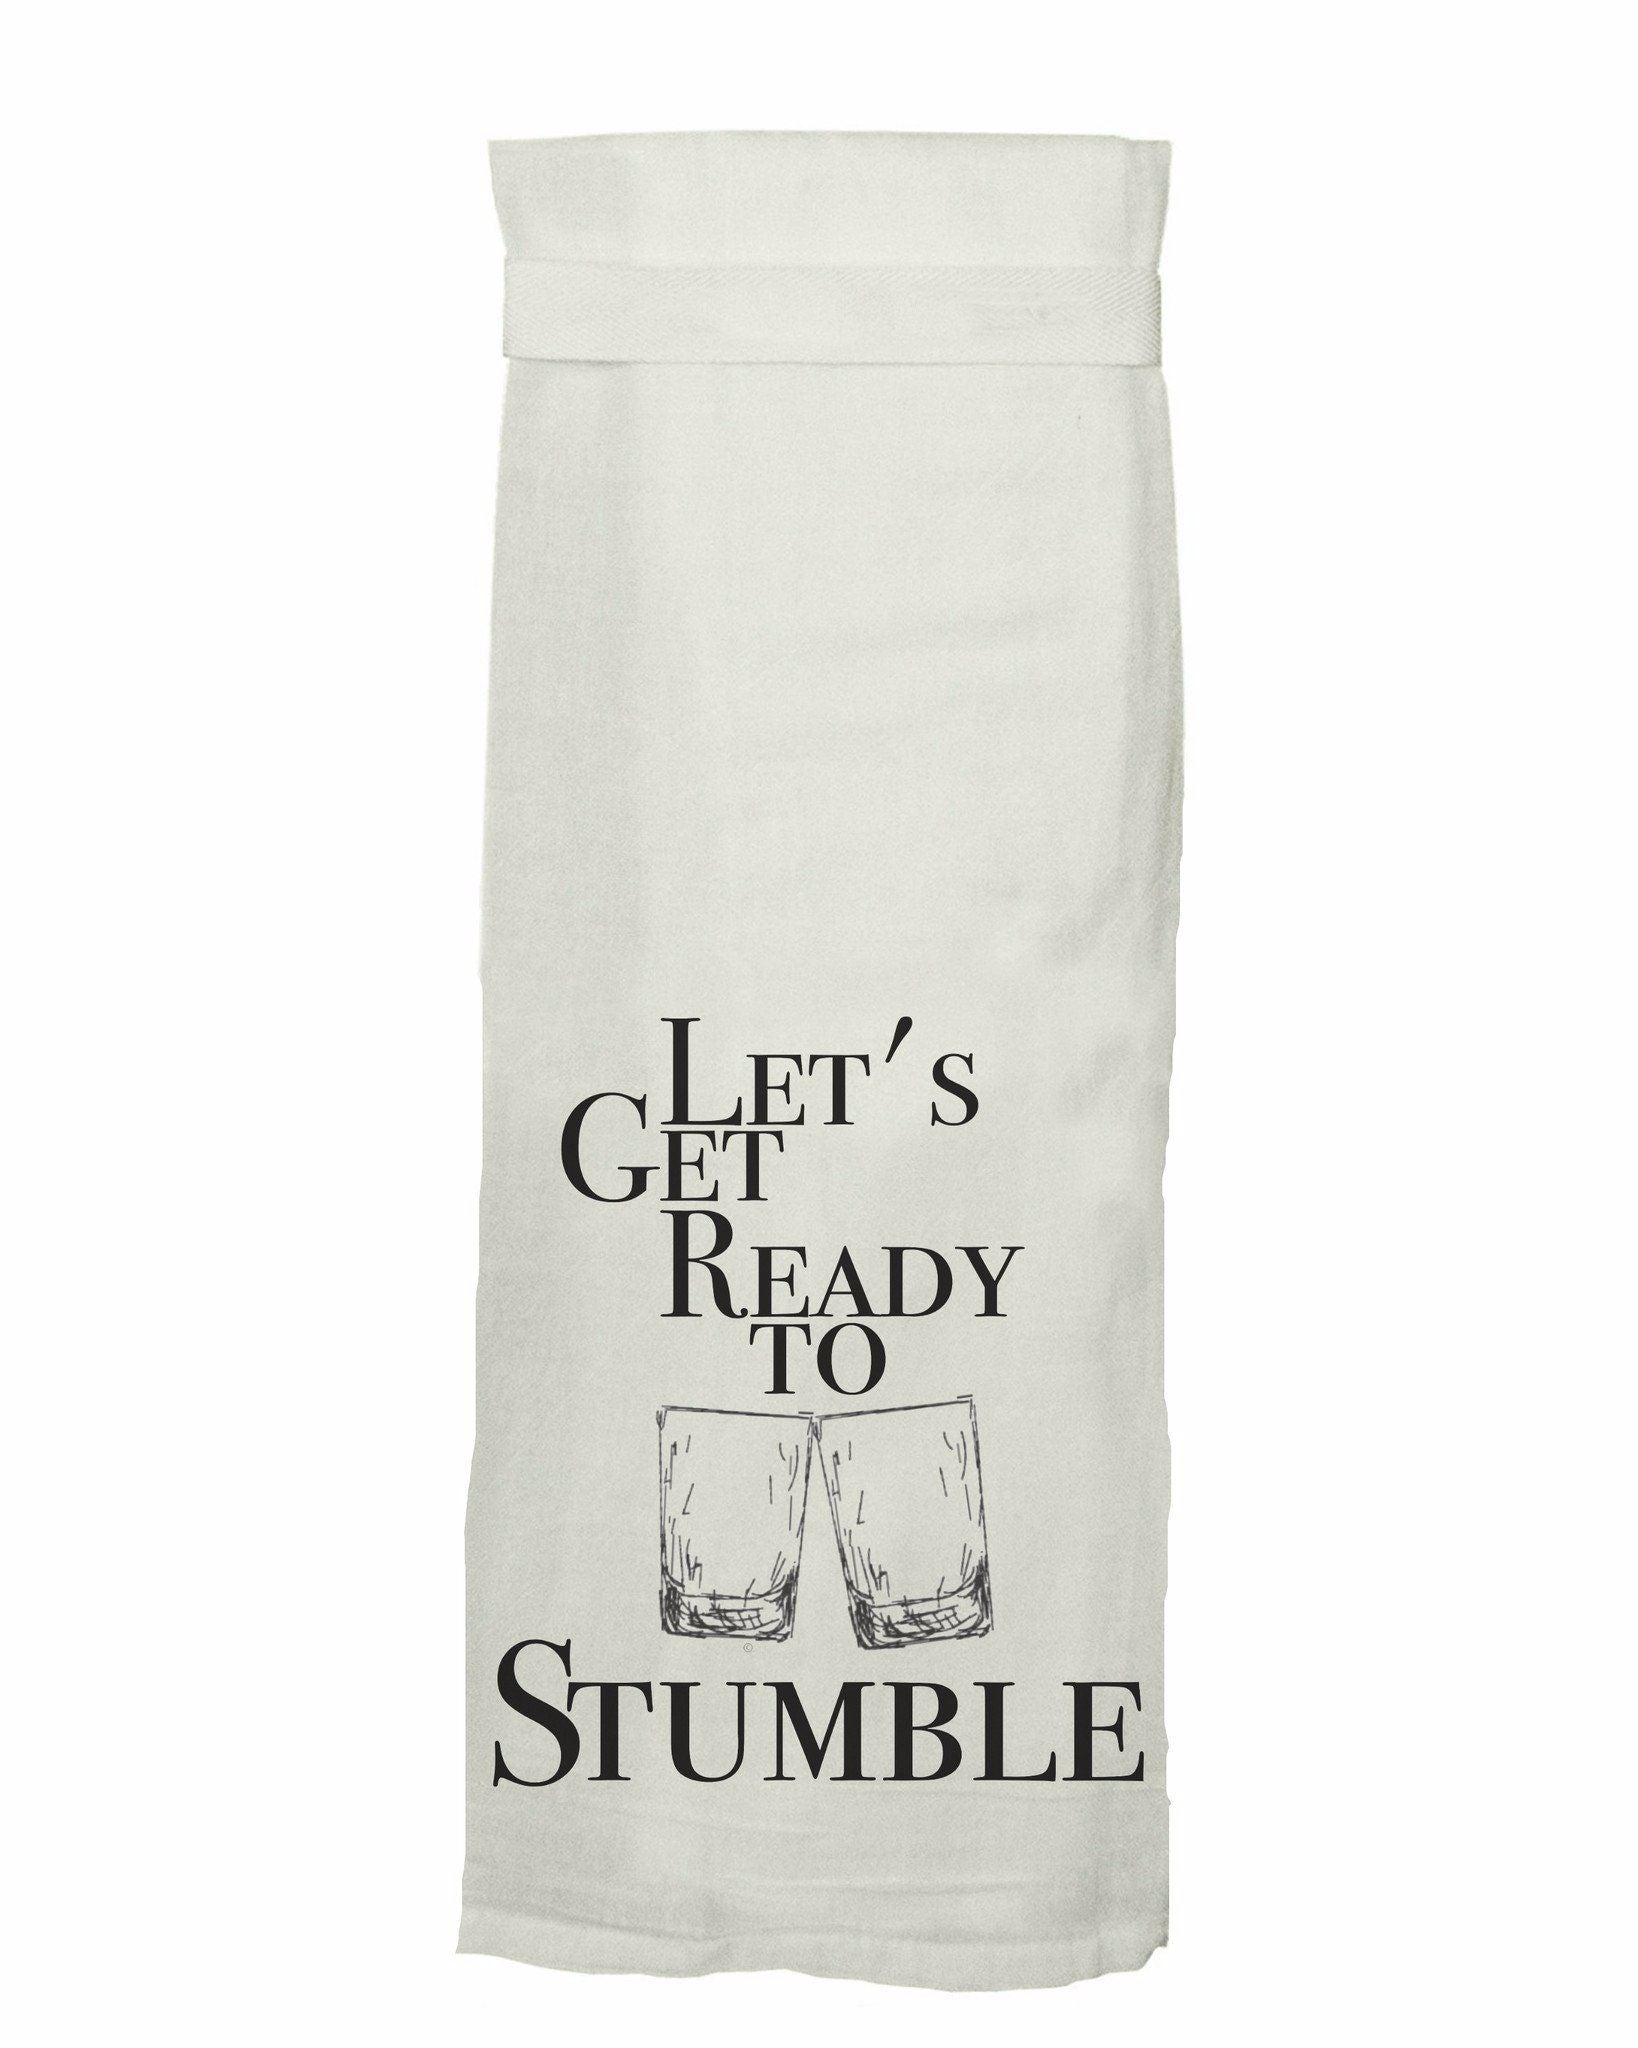 Let's Get Ready To Stumble Tea Towel